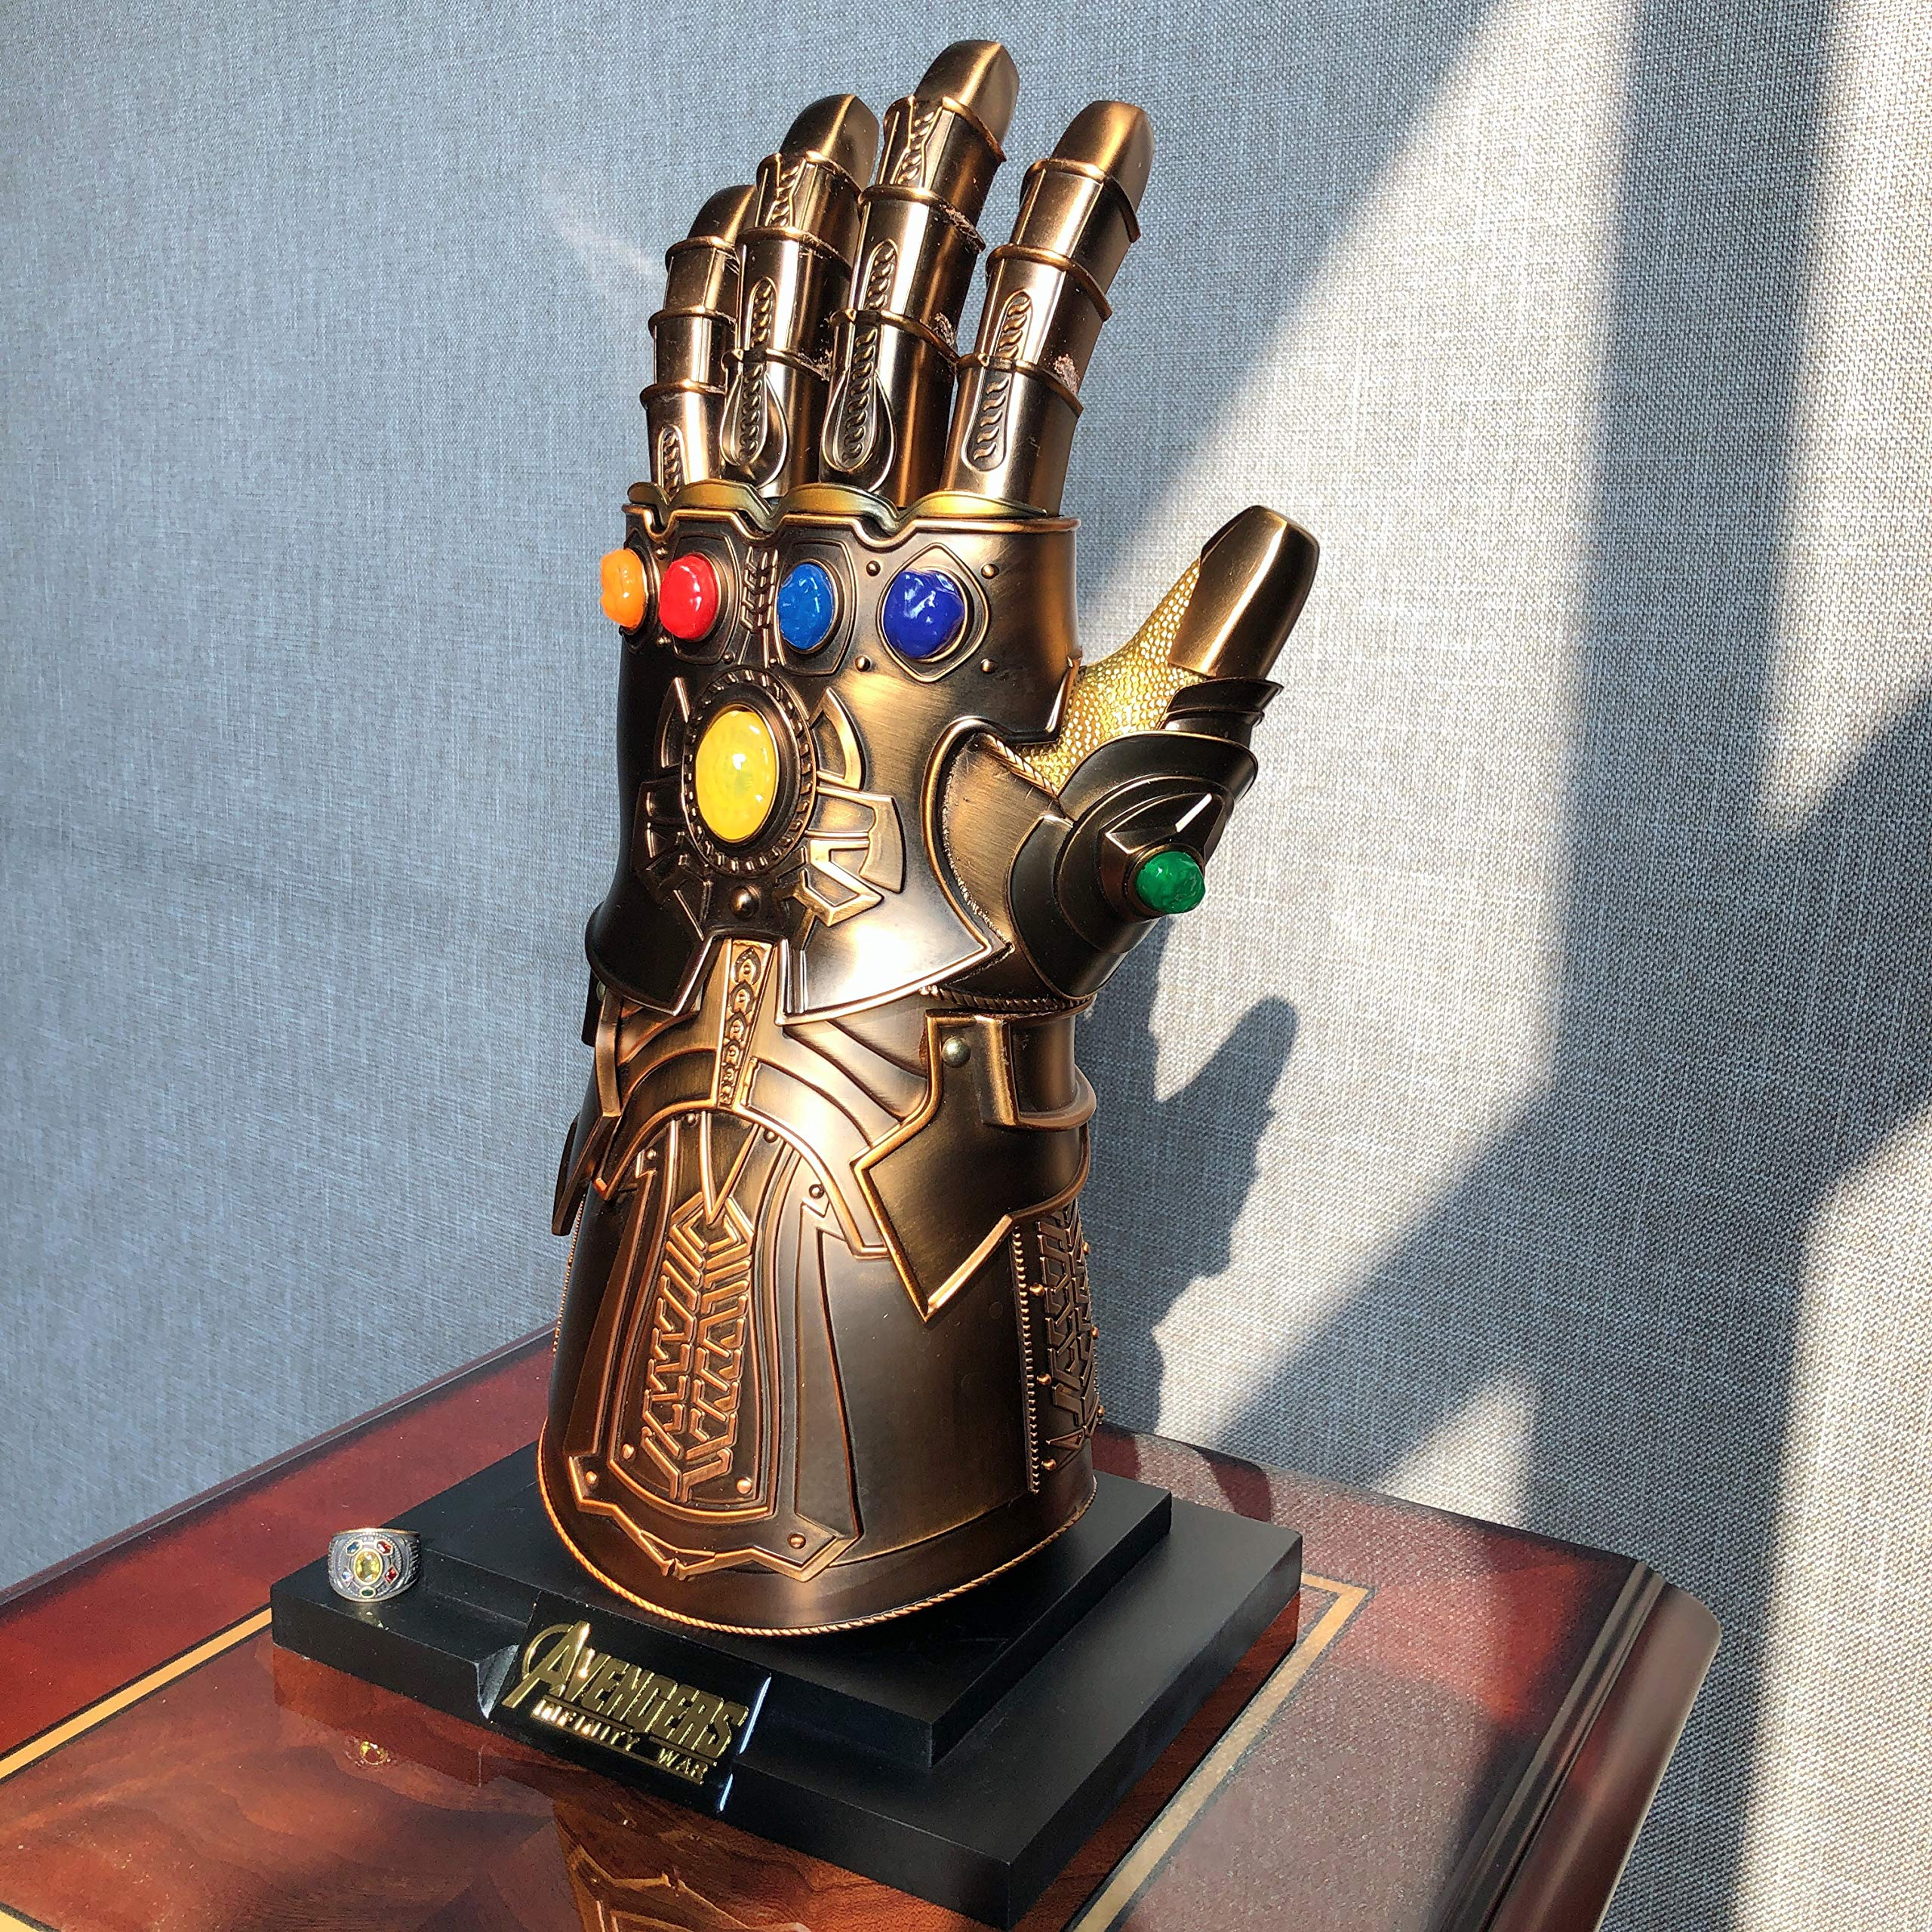 Thanos Infinity Gauntlet Full Metal 1:1 Wearable Cosplay Replica Magnetic LED Bronze by LowkyStar